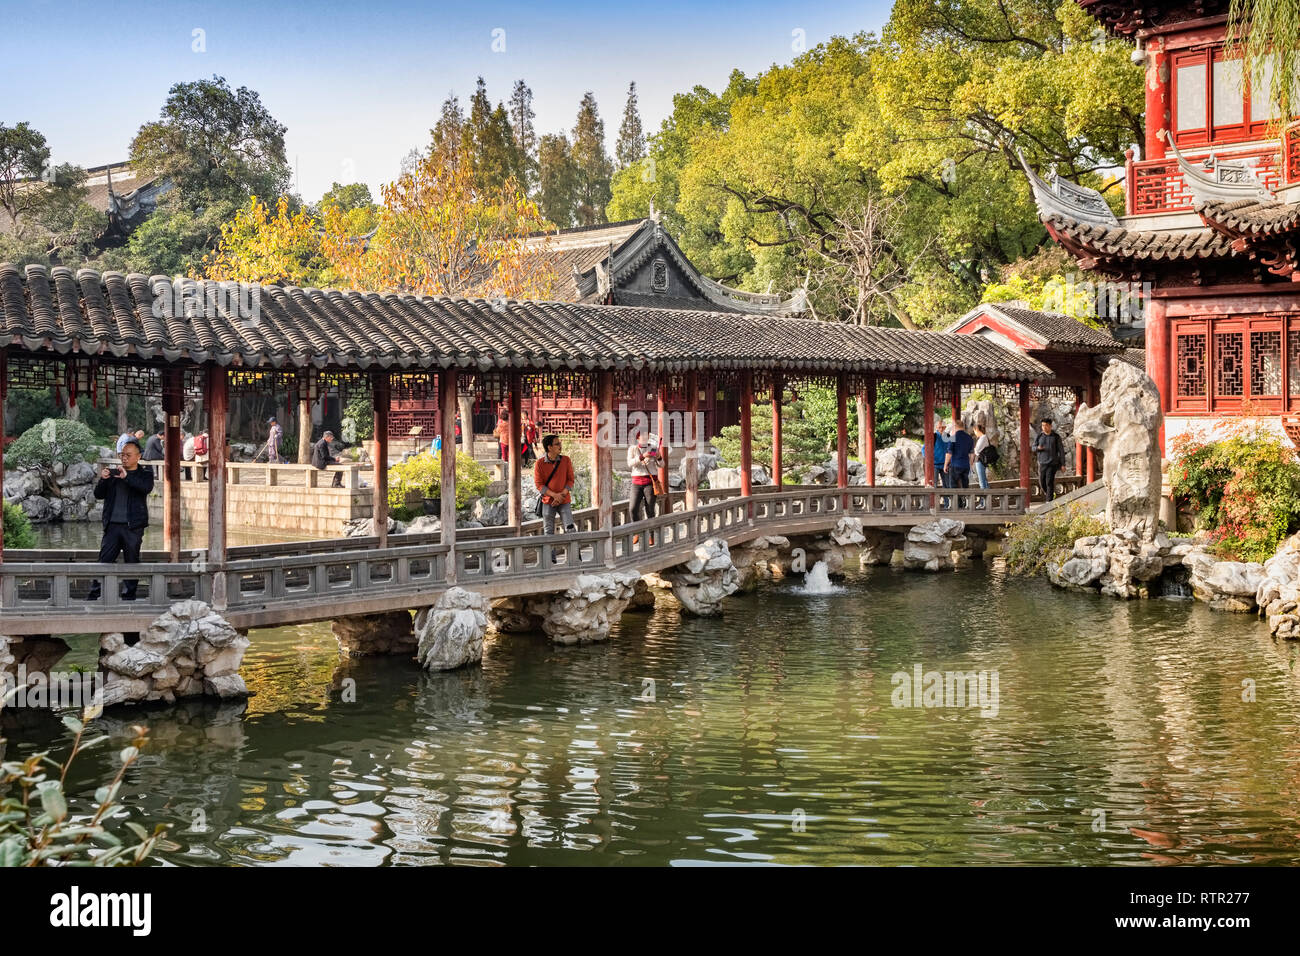 29 November 2018: Shanghai, China - The Jade Water Corridor bridge across a lake in the Yu Garden, part of the Shanghai Old Town district. - Stock Image